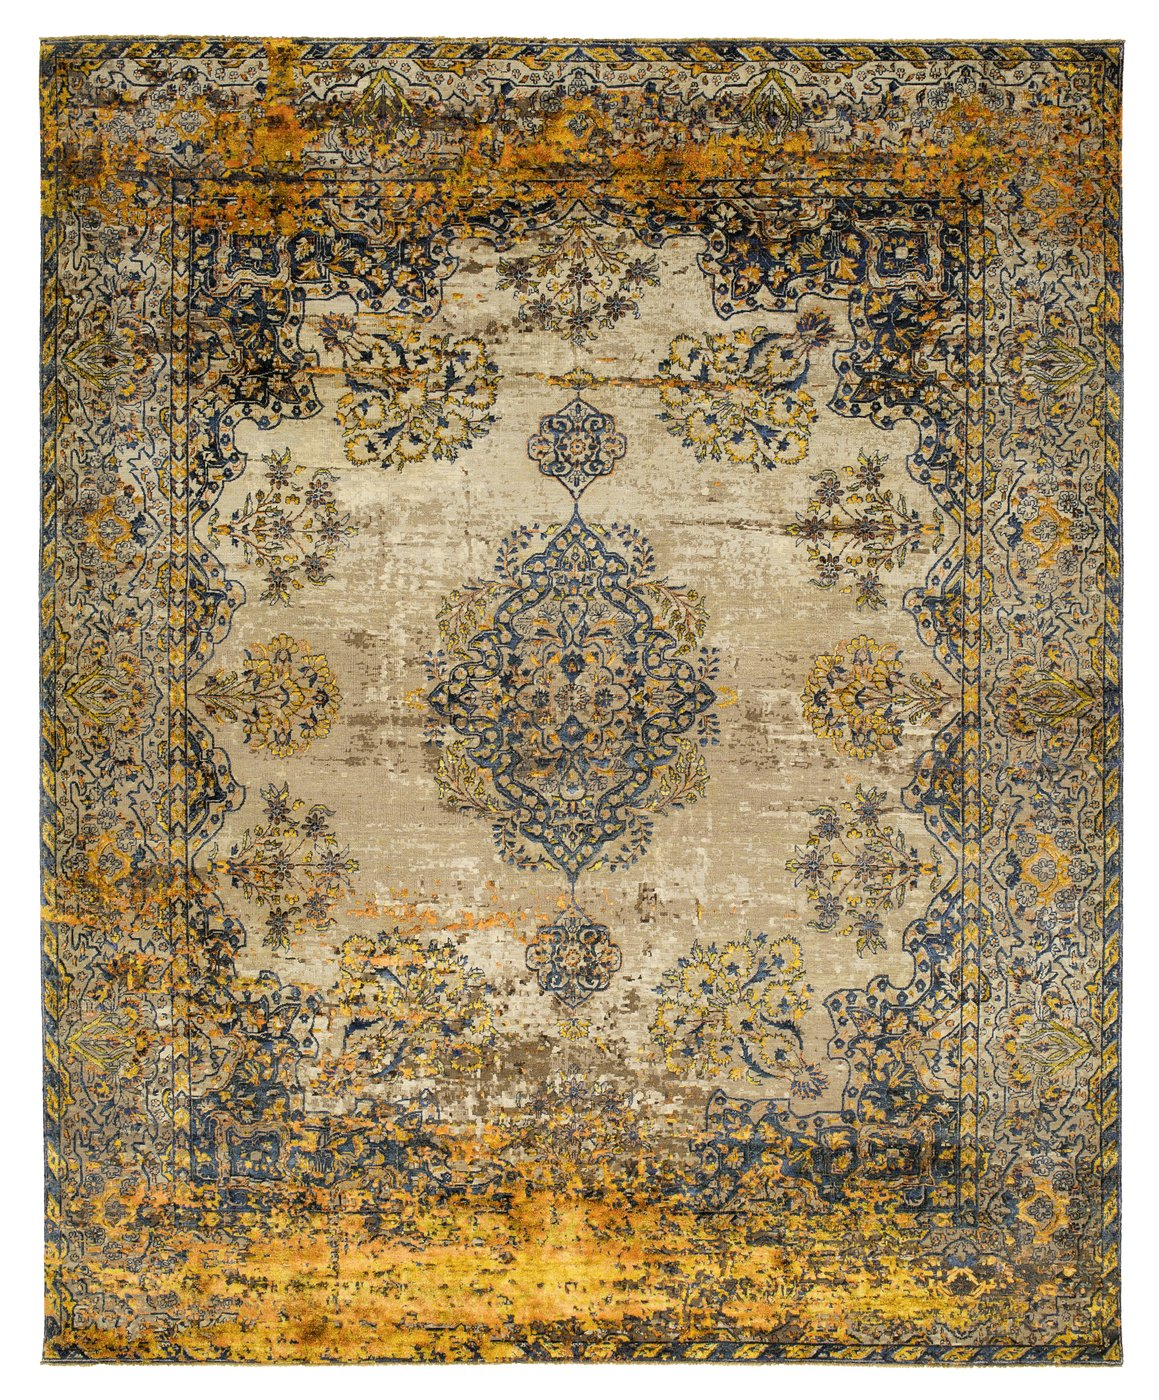 Visit Galerie SORS to view the new KIRMAN ROBSON ARTWORK 19 rug and discover the infinite possibilities of a rug by Jan Kath.